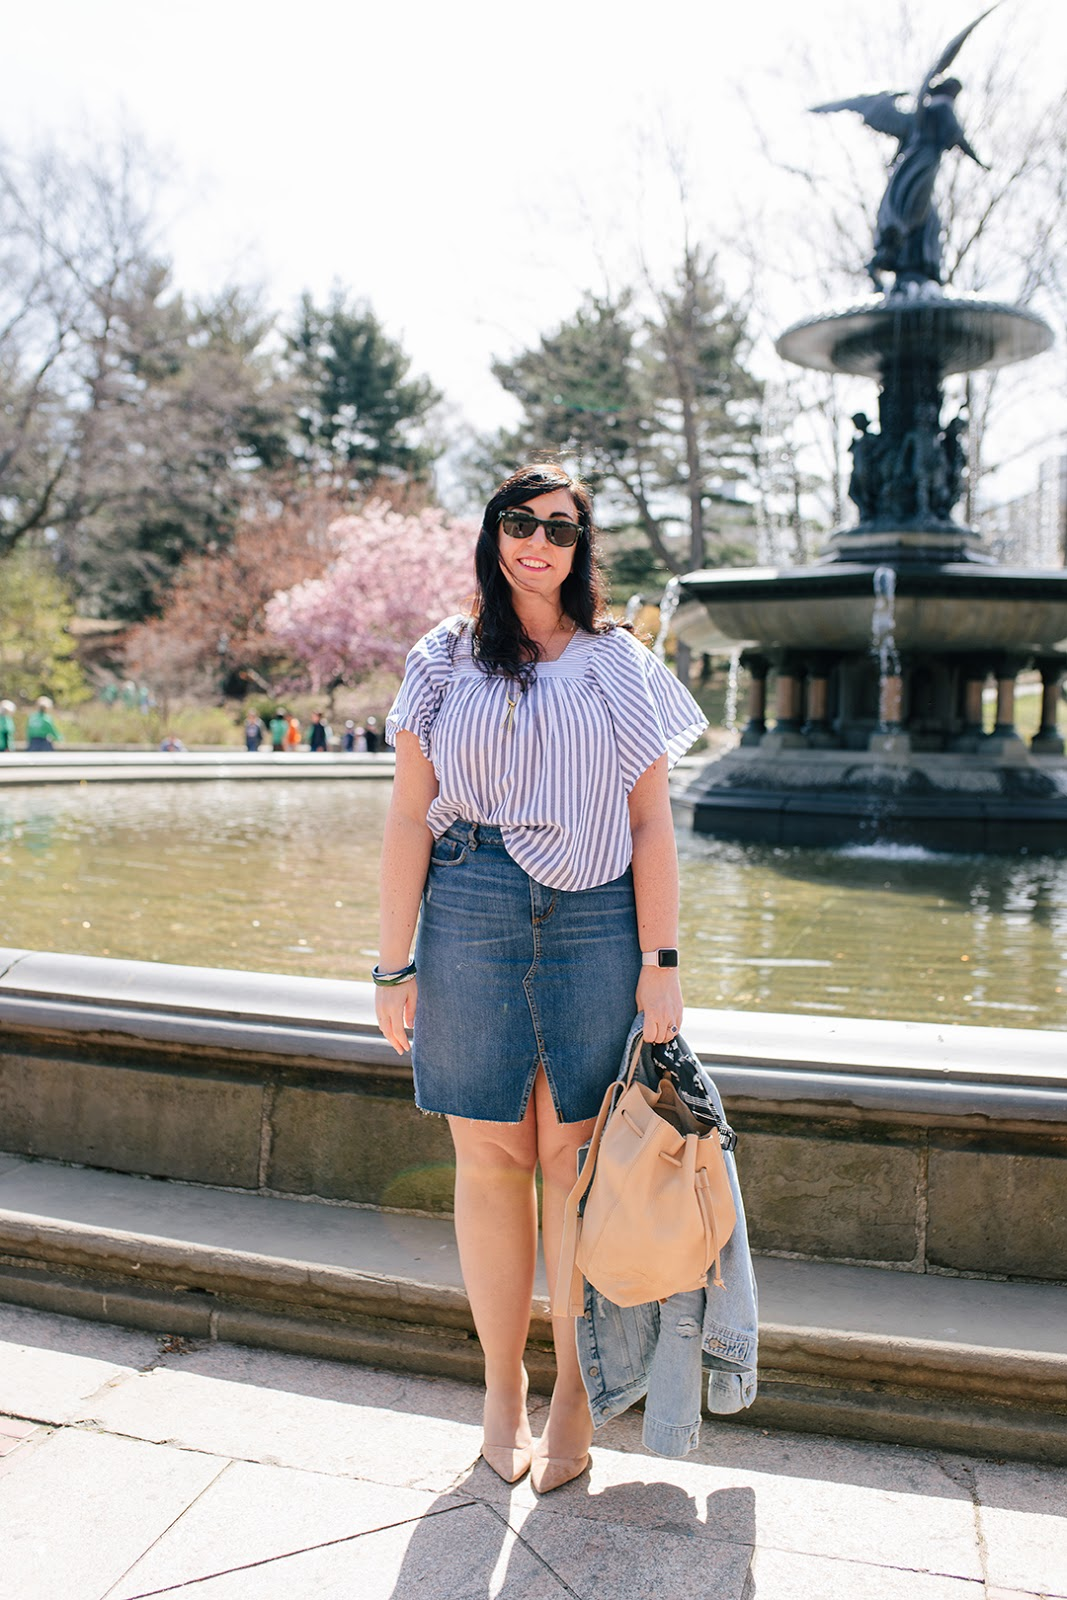 OOTD: Butterflies and Cherry Blossoms featuring Madewell :: Effortlessly with Roxy